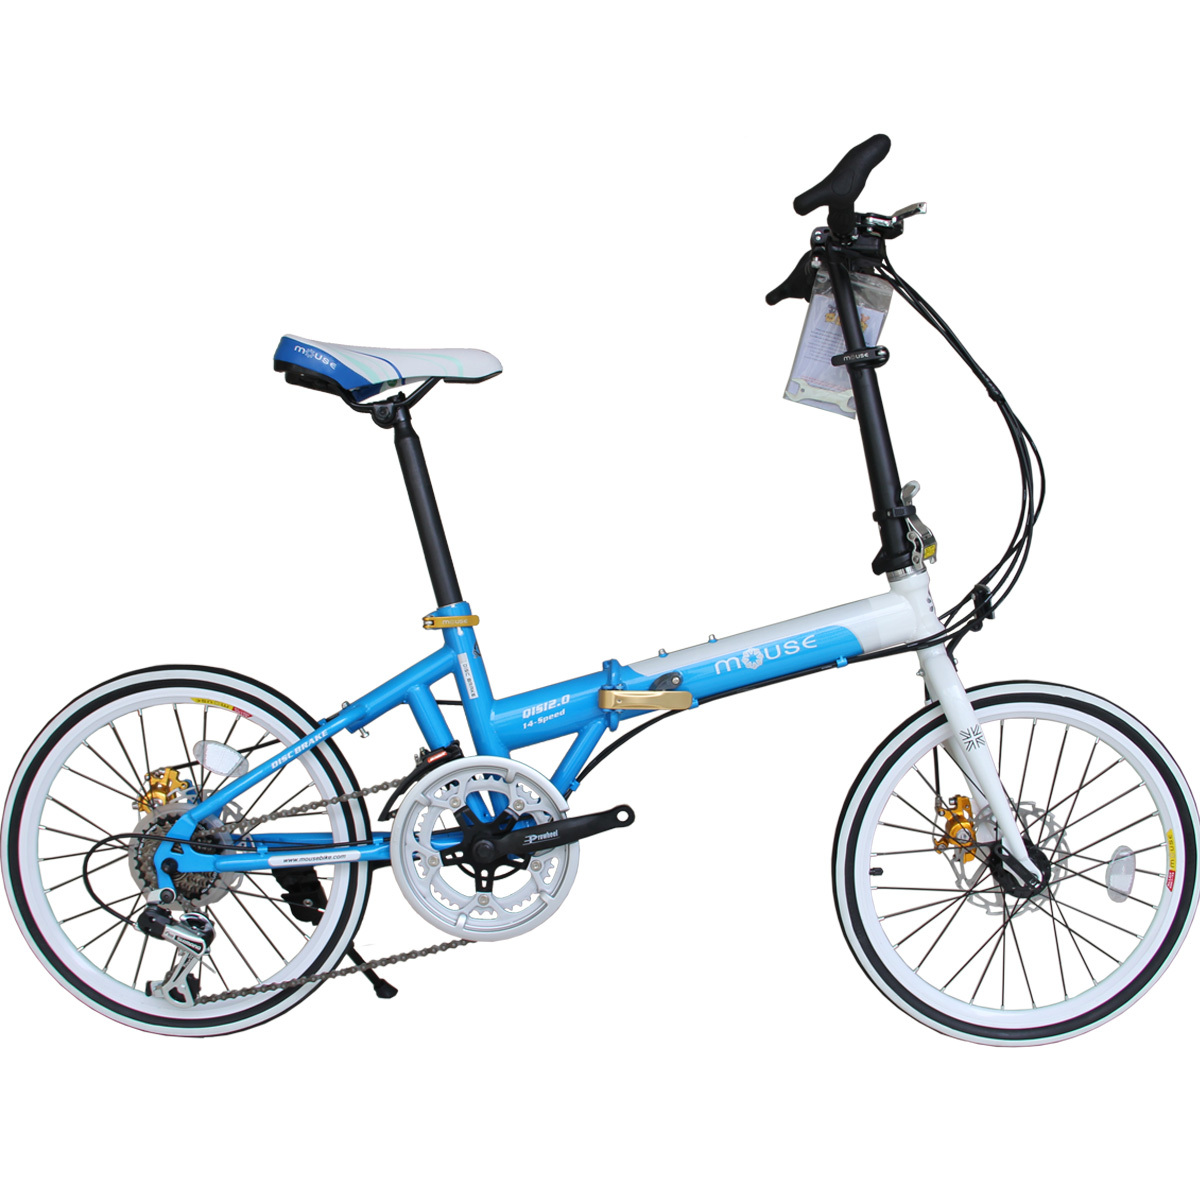 Squirrel 20 folding bike bicycle double disc 2.0 14 road bike automobile race double quick release(China (Mainland))